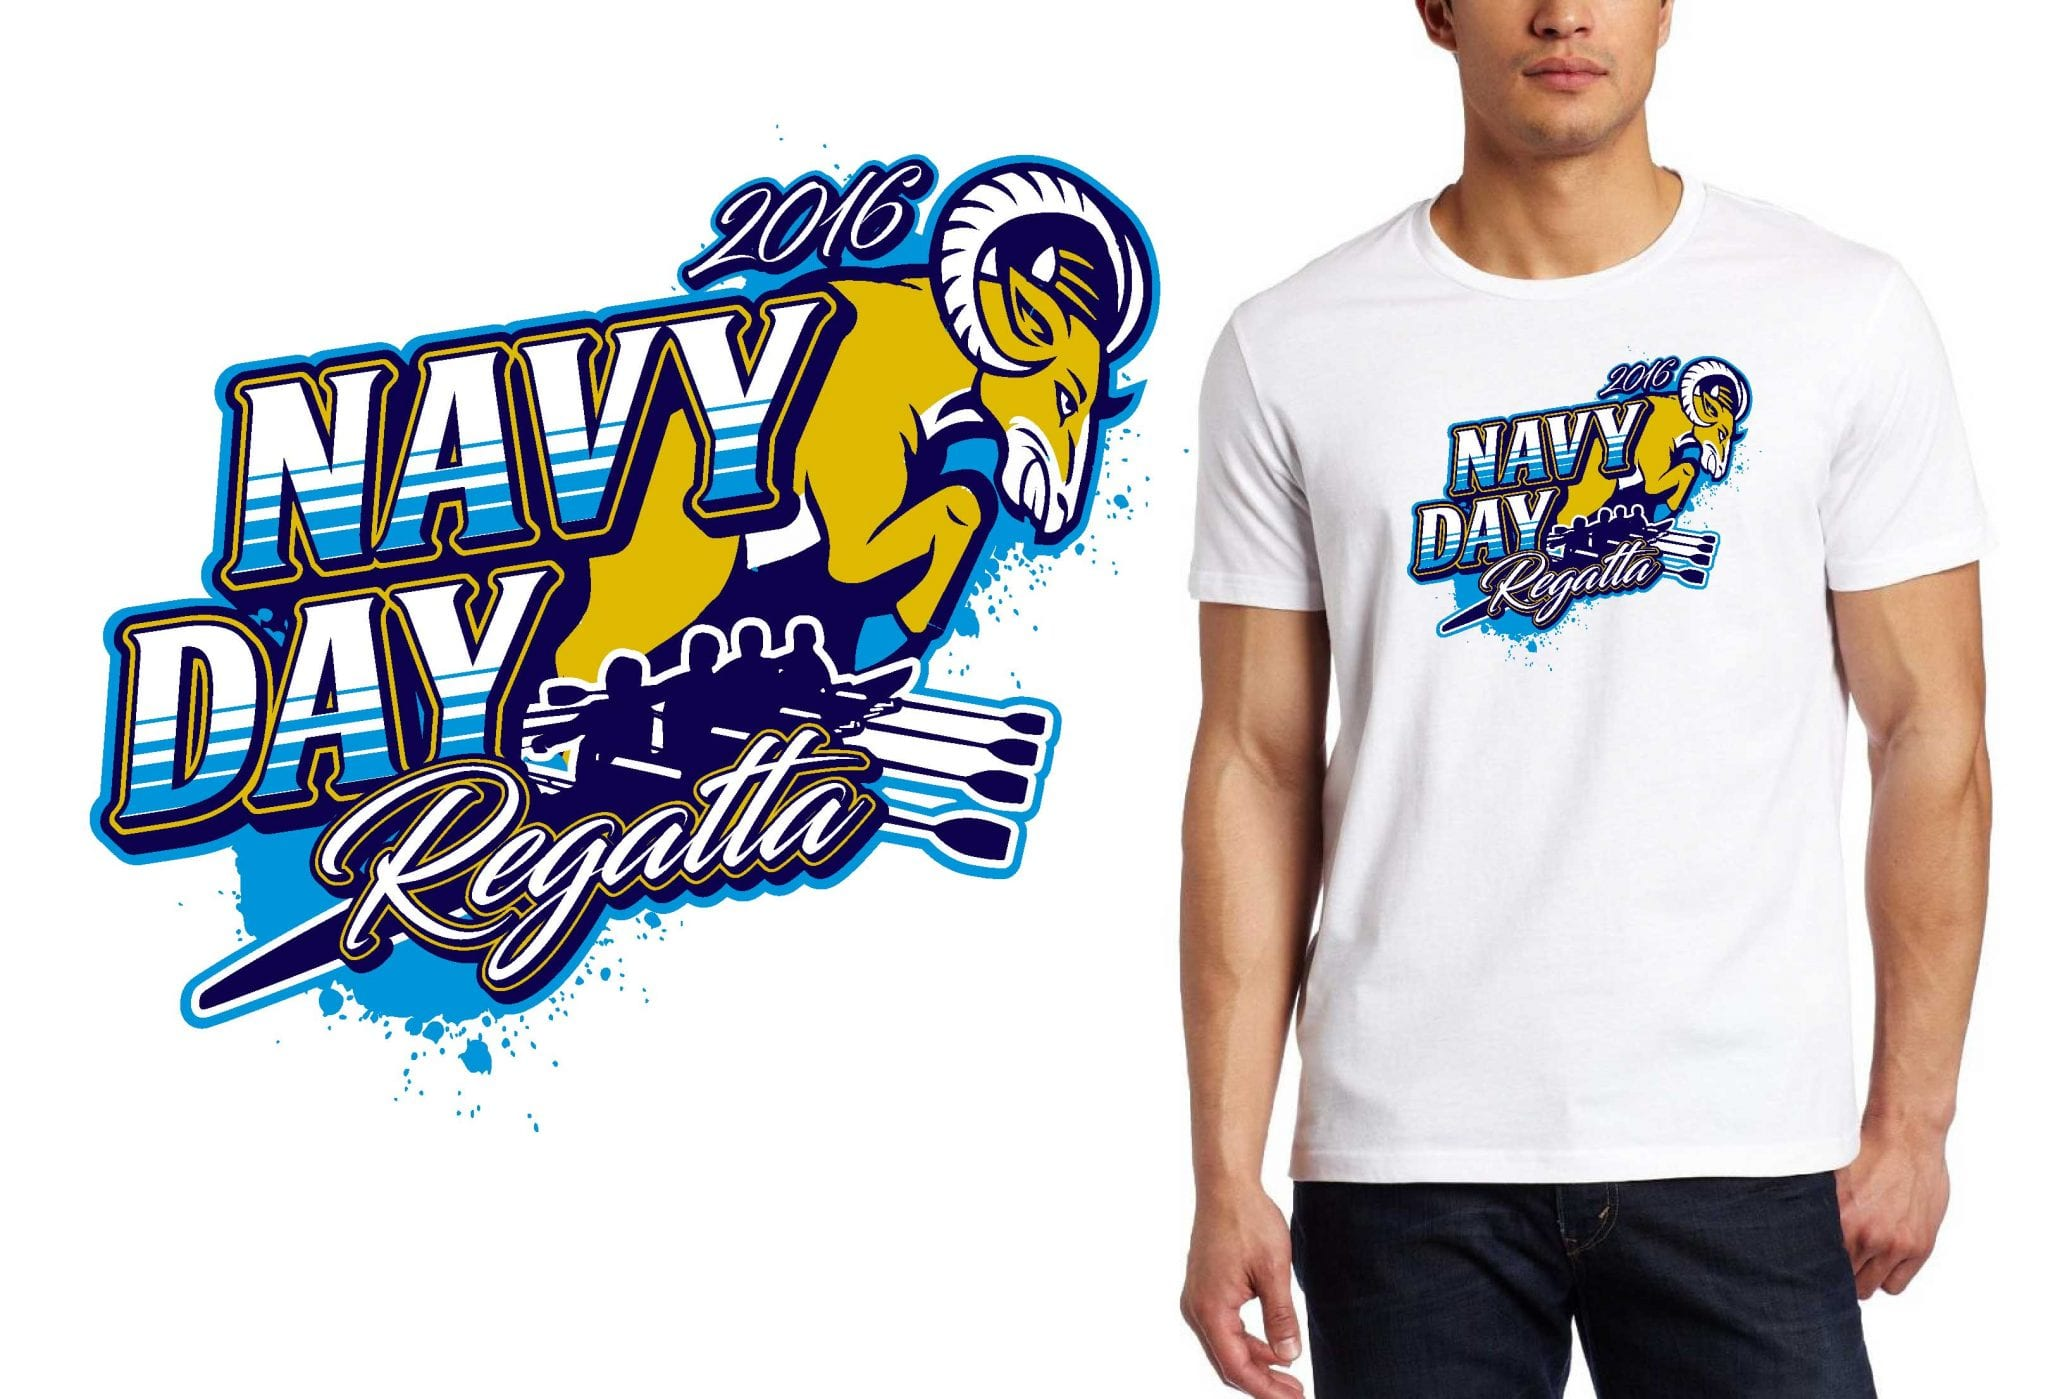 PRINT 10 19 16 Navy Day Regatta VECTOR LOGO TSHIRT DESIGN FOR regatta